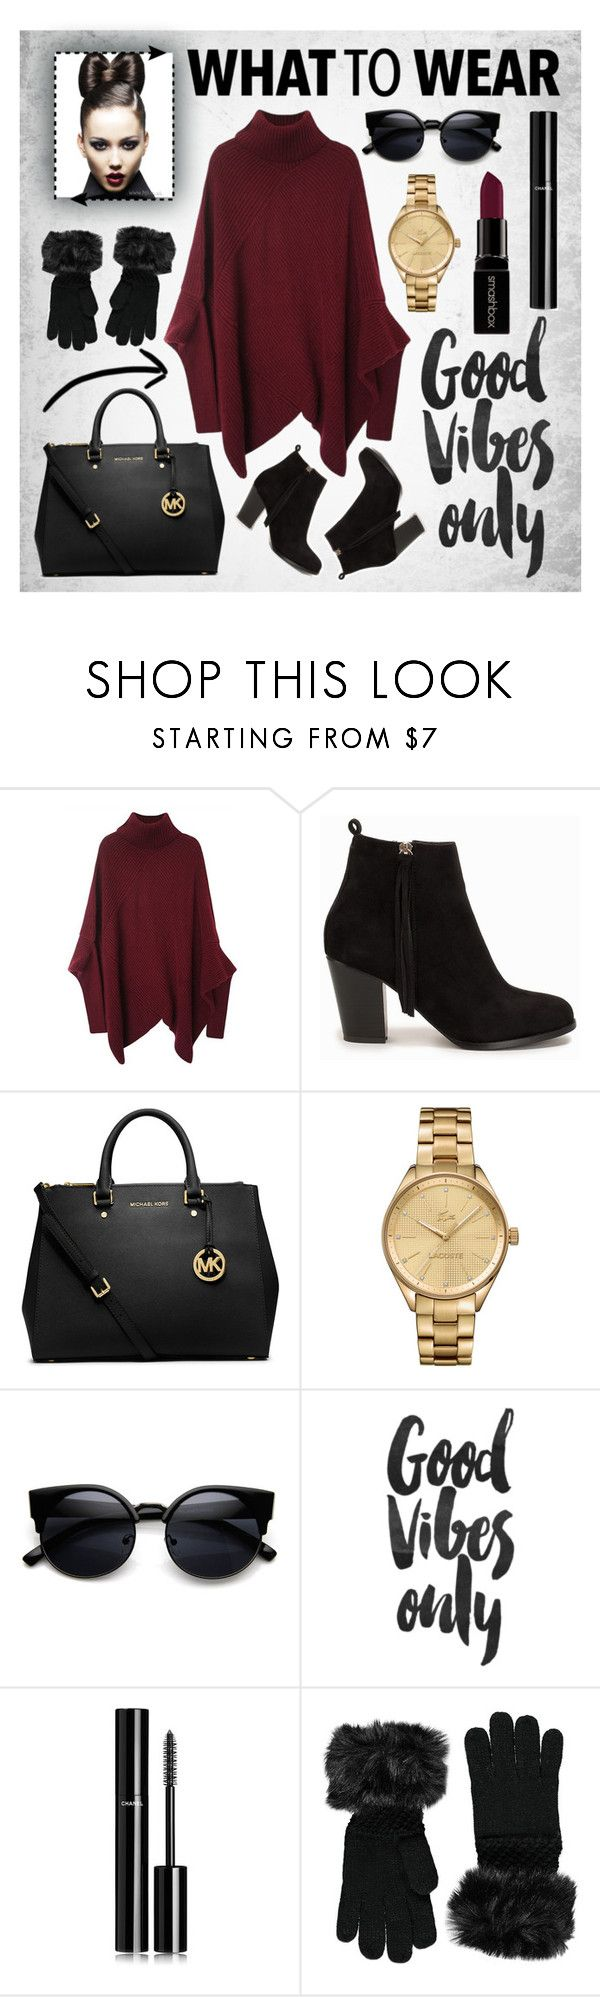 """""""What to Wear"""" by aurorabvik ❤ liked on Polyvore featuring Nly Shoes, Michael Kors, Smashbox, Lacoste, Chanel, Forever 21, michaelkors, booties and redlips"""